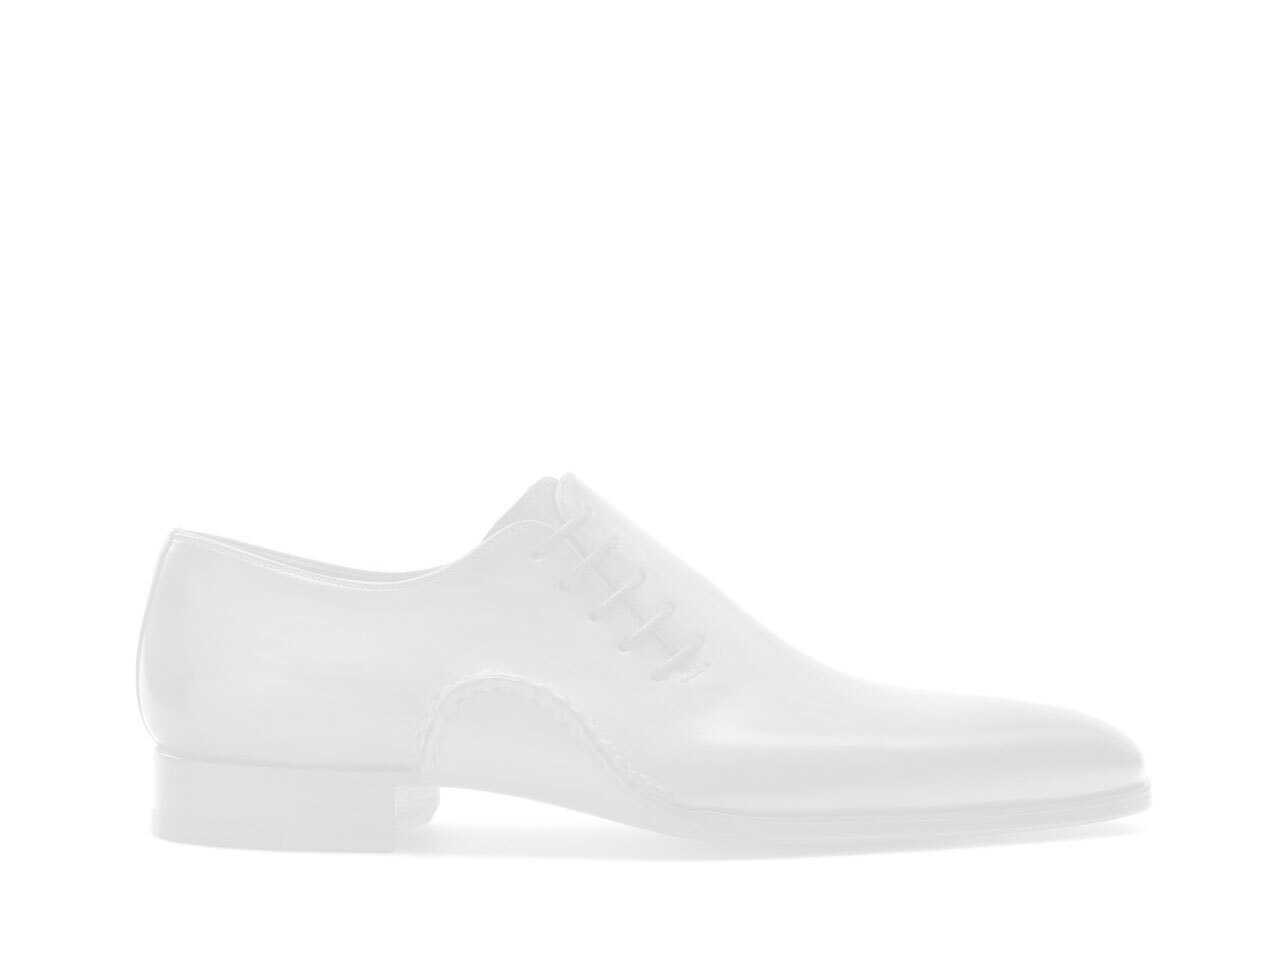 Side view of the Magnanni Armando Grey Men's Oxford Shoes